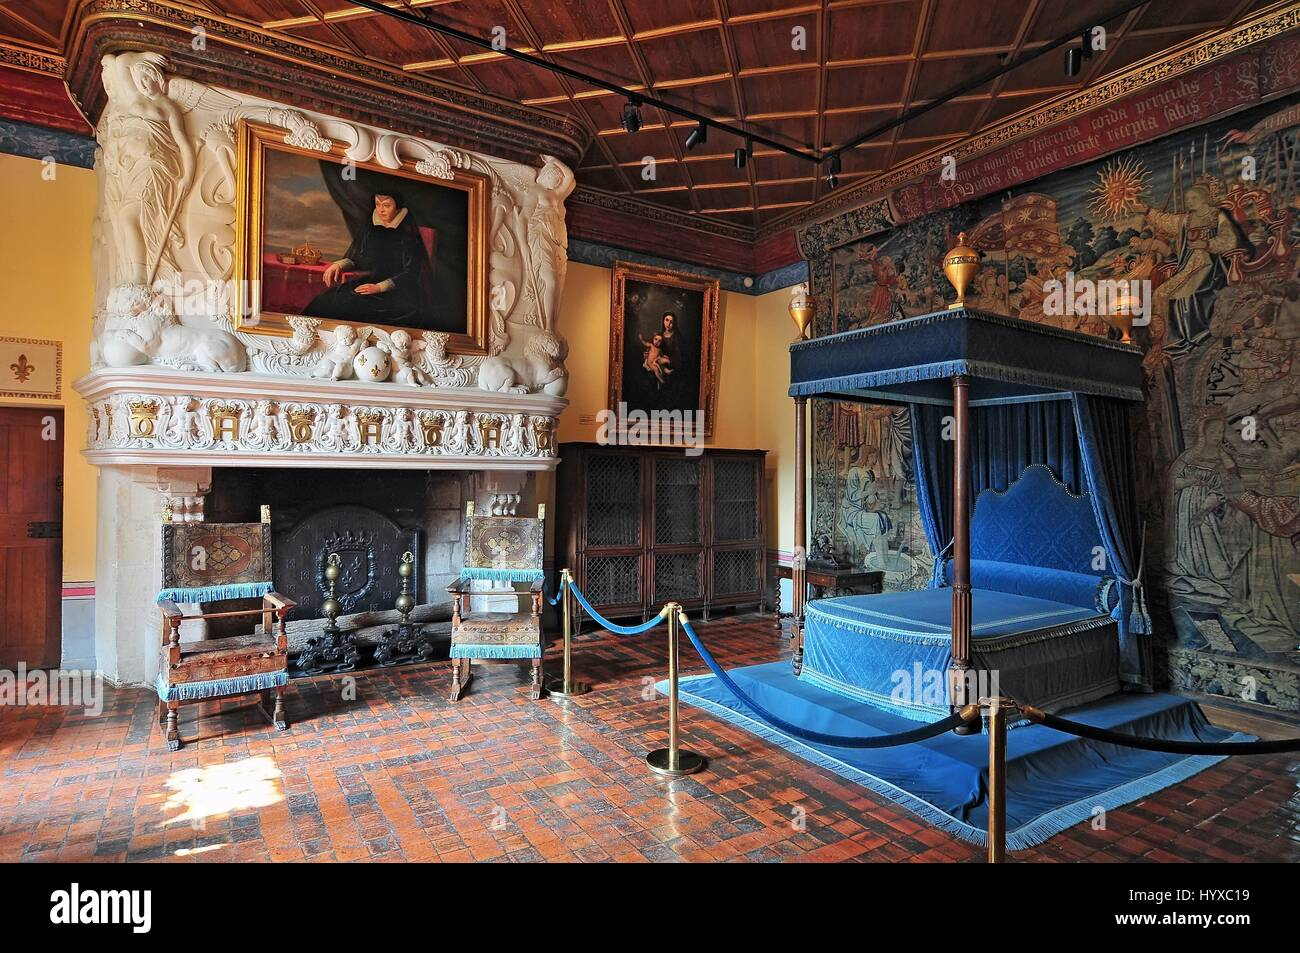 Interior of Chateau de Chenonceau France. This castle is located ...